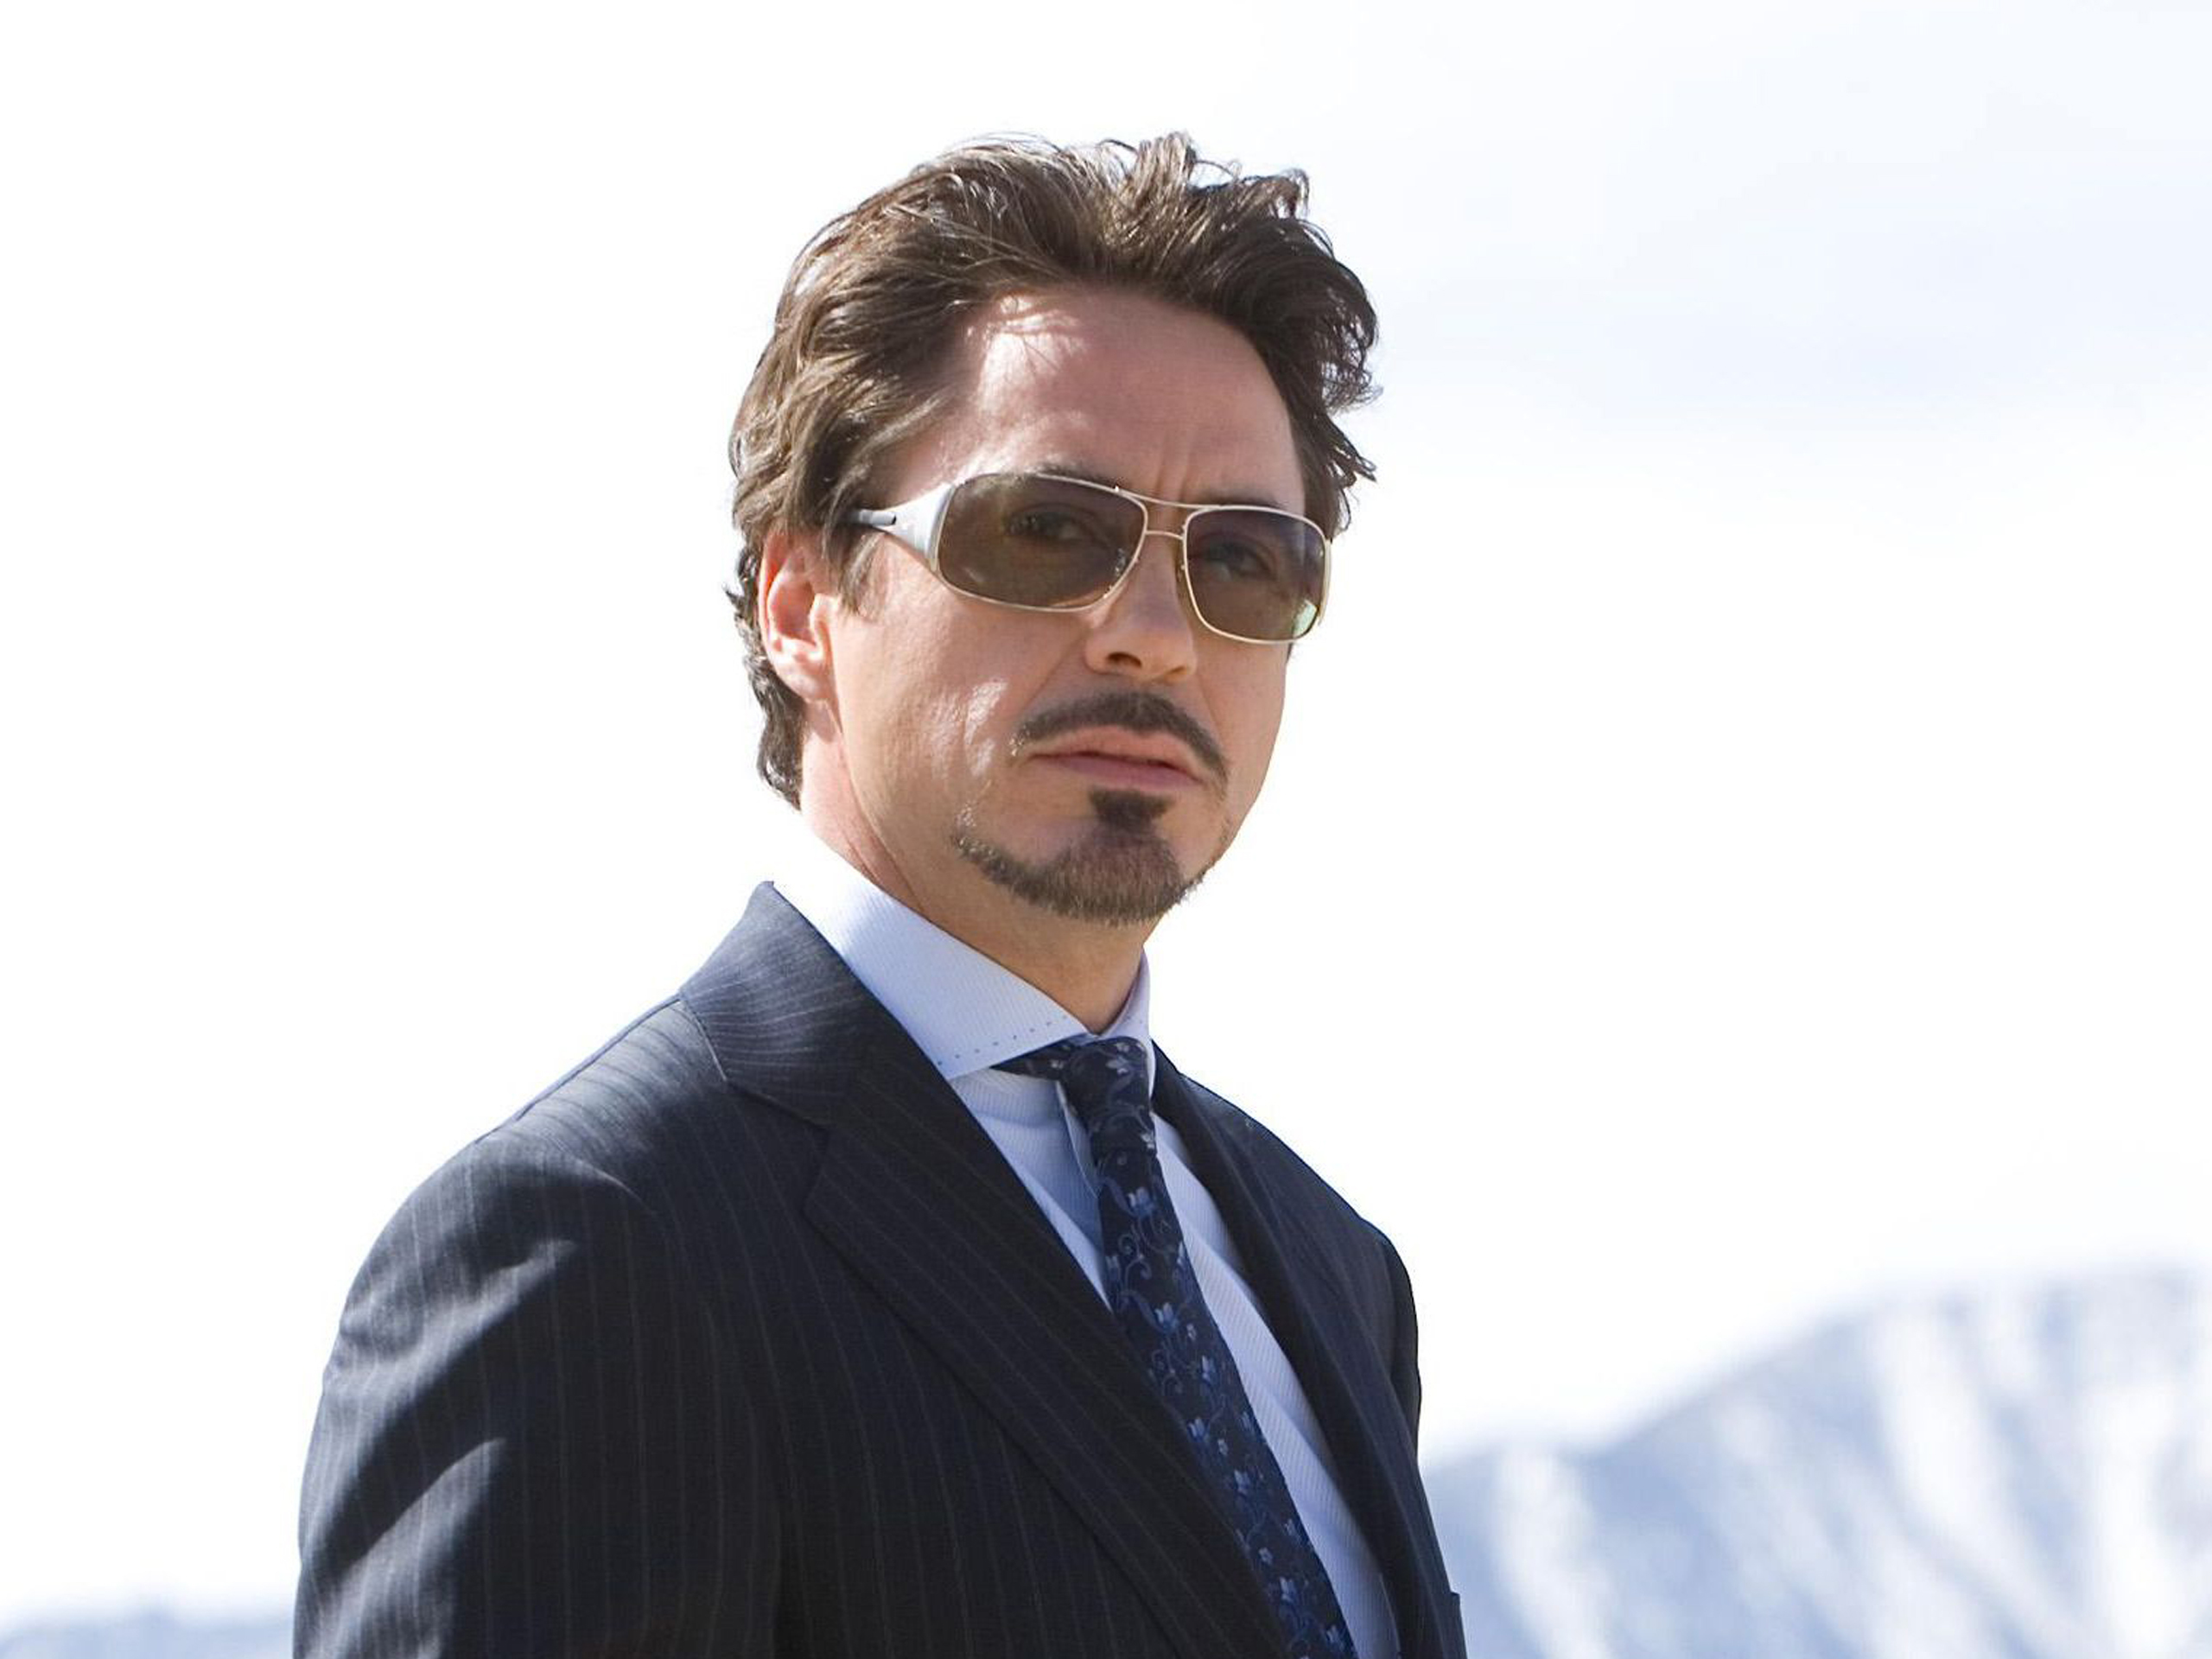 Robert Downey Jr Wallpapers Images Photos Pictures Backgrounds 2560x1920